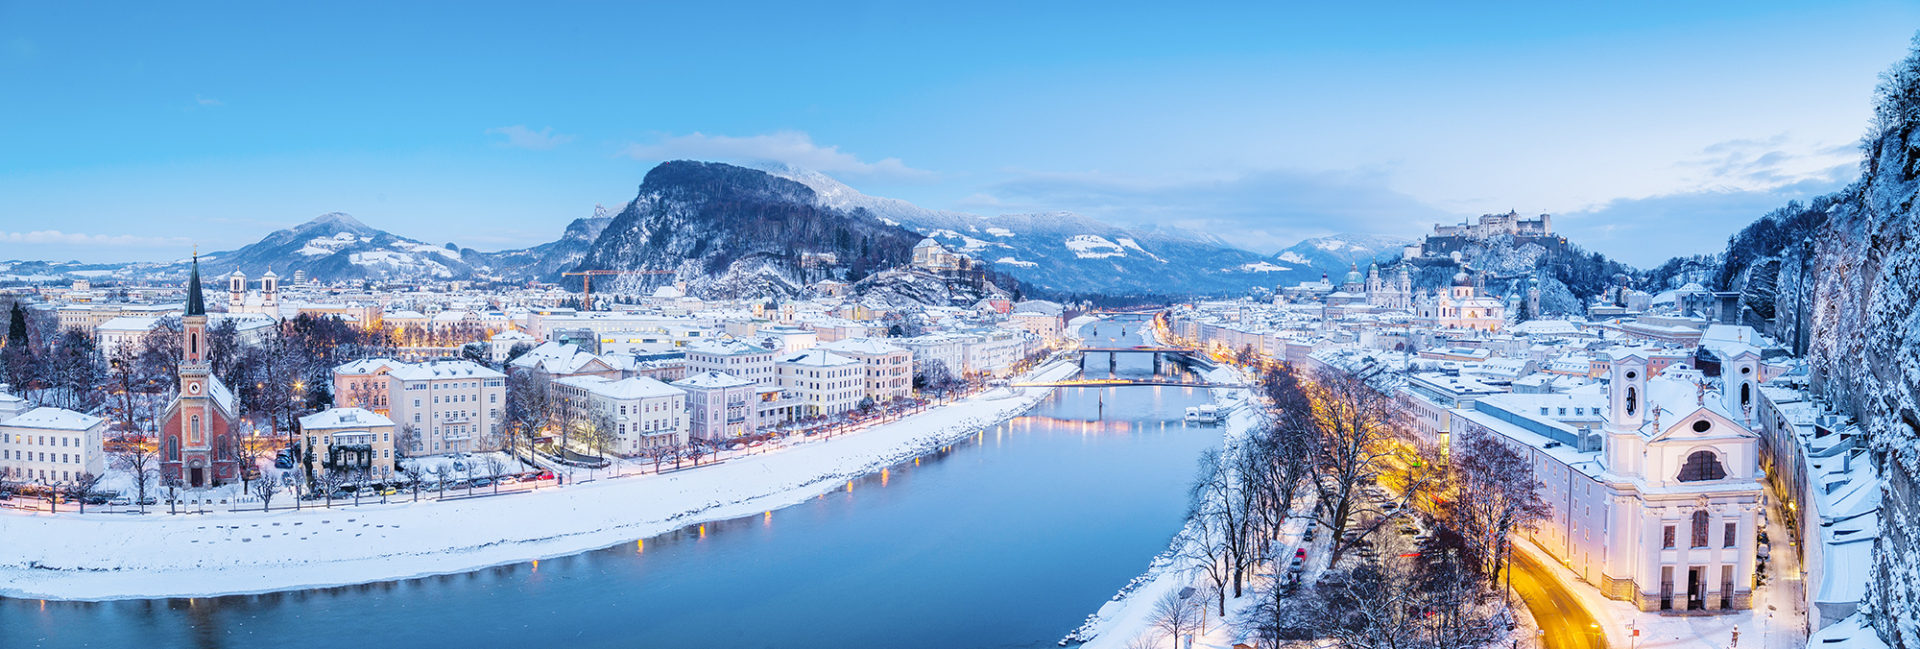 Payroll and HR in Austria